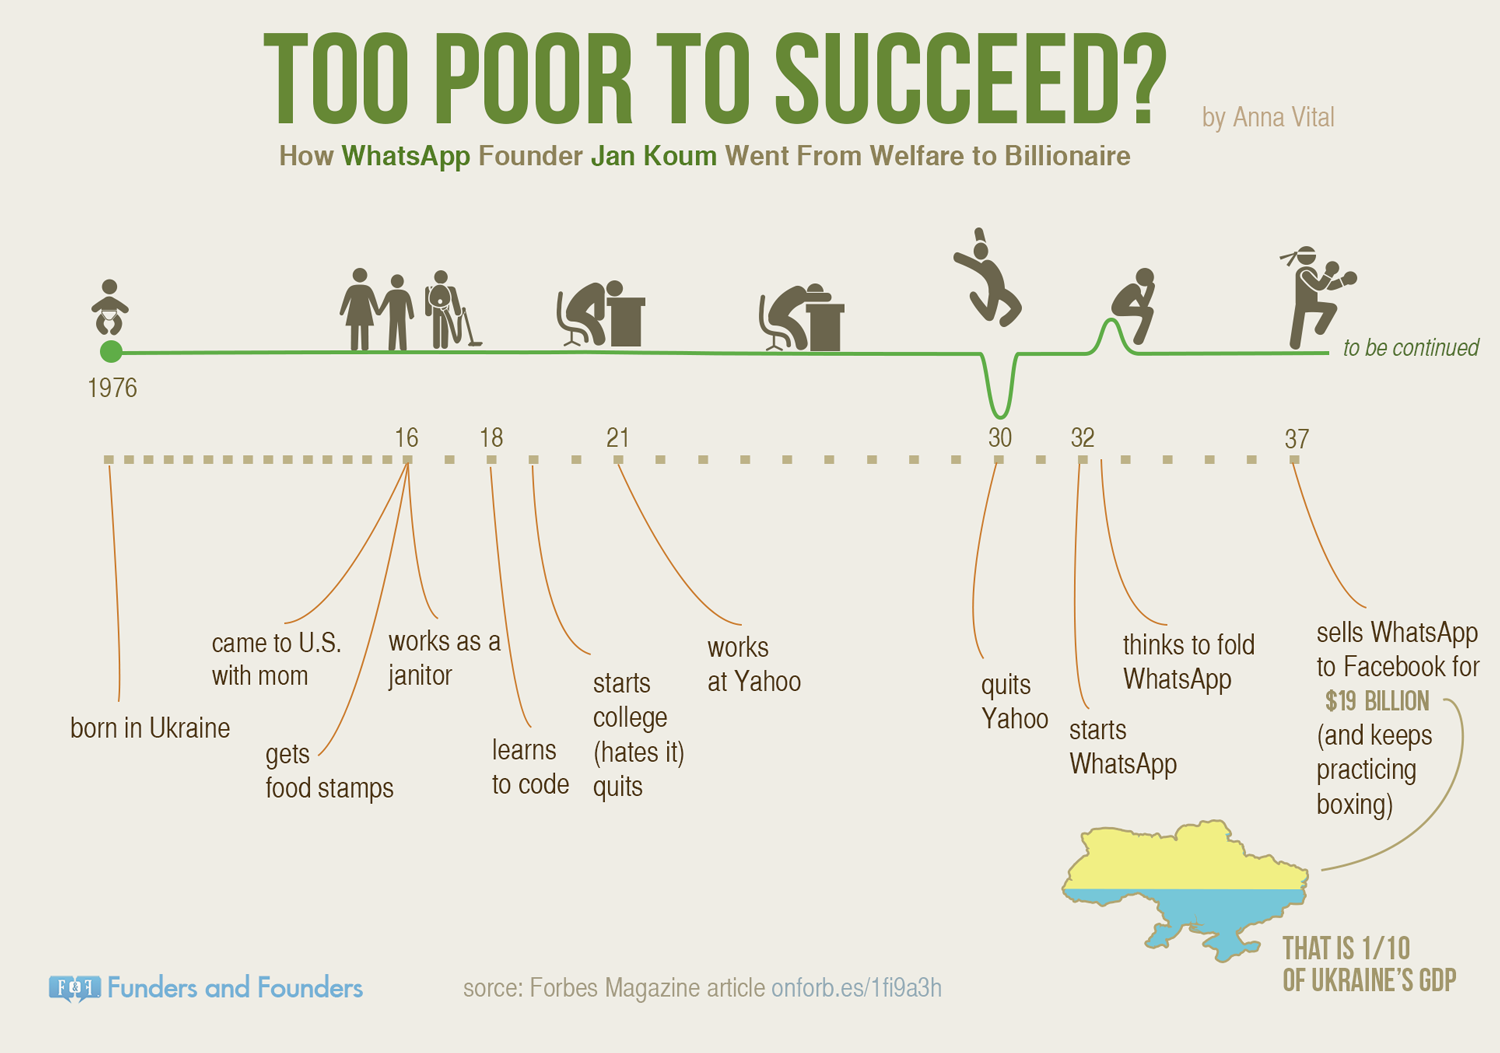 Jan Kims journey by Anna Vital's infographic